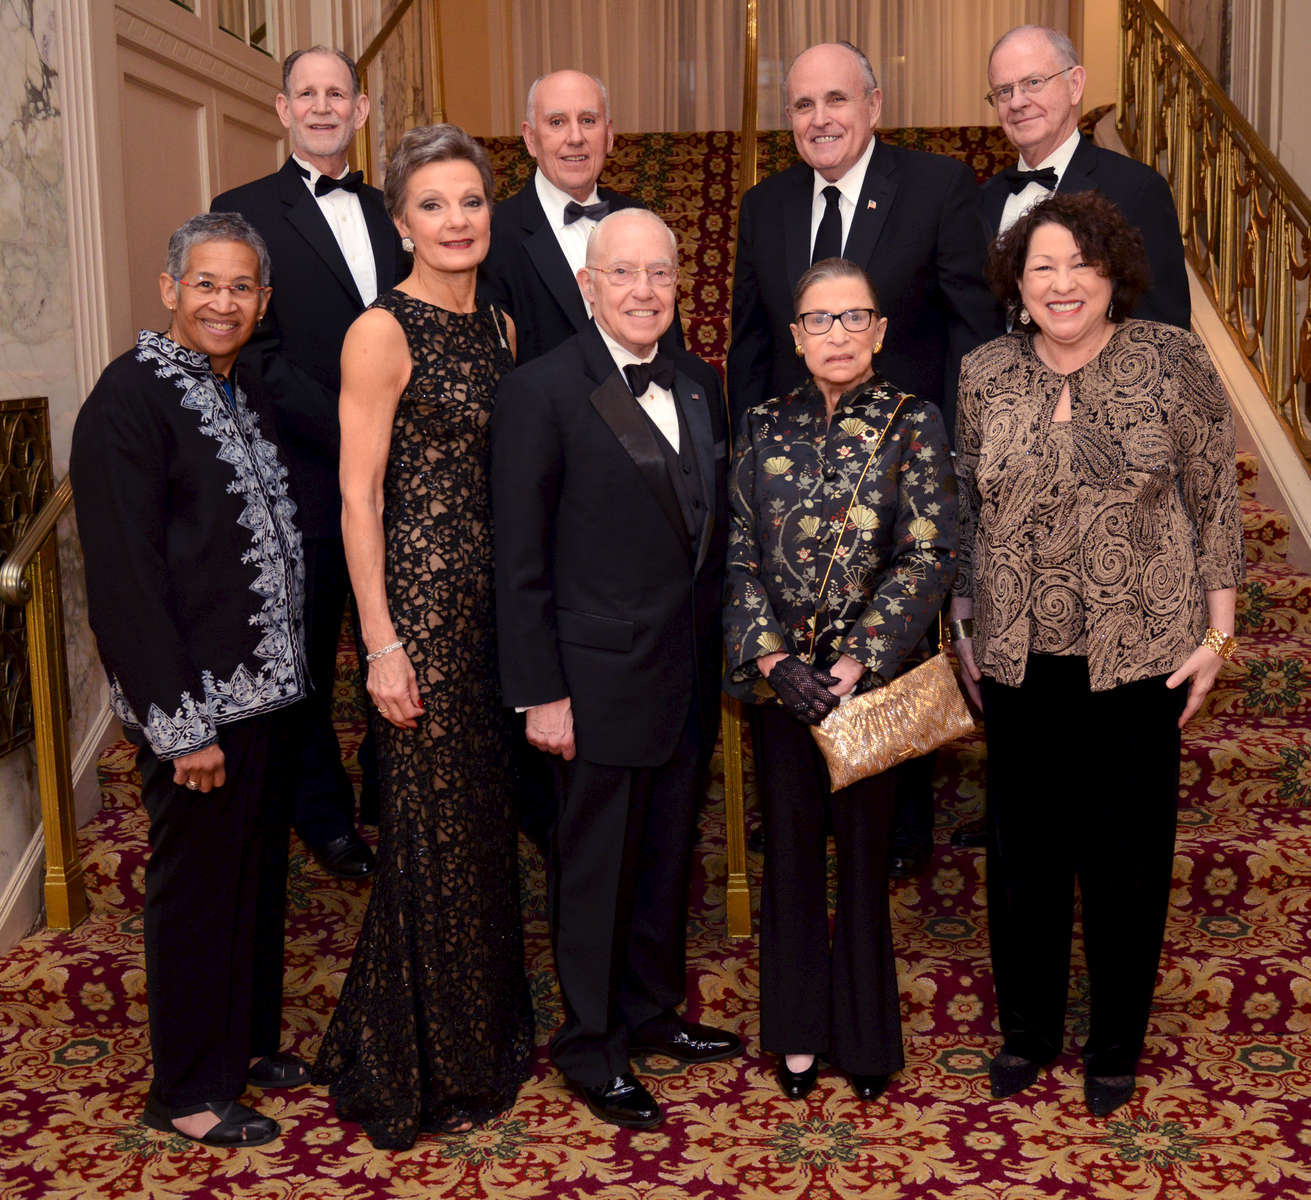 The New York County Lawyers\' Association held their 100th Annual Dinner on Wednesday December 17, 2014 at the Waldorf-Astoria Hotel.This year\'s honorees were: Front row second from left; SDNY Chief Judge Loretta Preska; Former U.S. Attorney General Michael Mukasey; U.S. Supreme Court Justices Ruth Bader Ginsburg and Sonia Sotomayor were speakers. Also on hand was SDNY Judge Deborah Batts, front row left.Back row from left: Lewis Tesser-NYCLA President; SDNY Judge P. Kevin Castel; Former NYC Mayor Rudolph Giuliani; and Robert Haig-partner at Kelley Drye